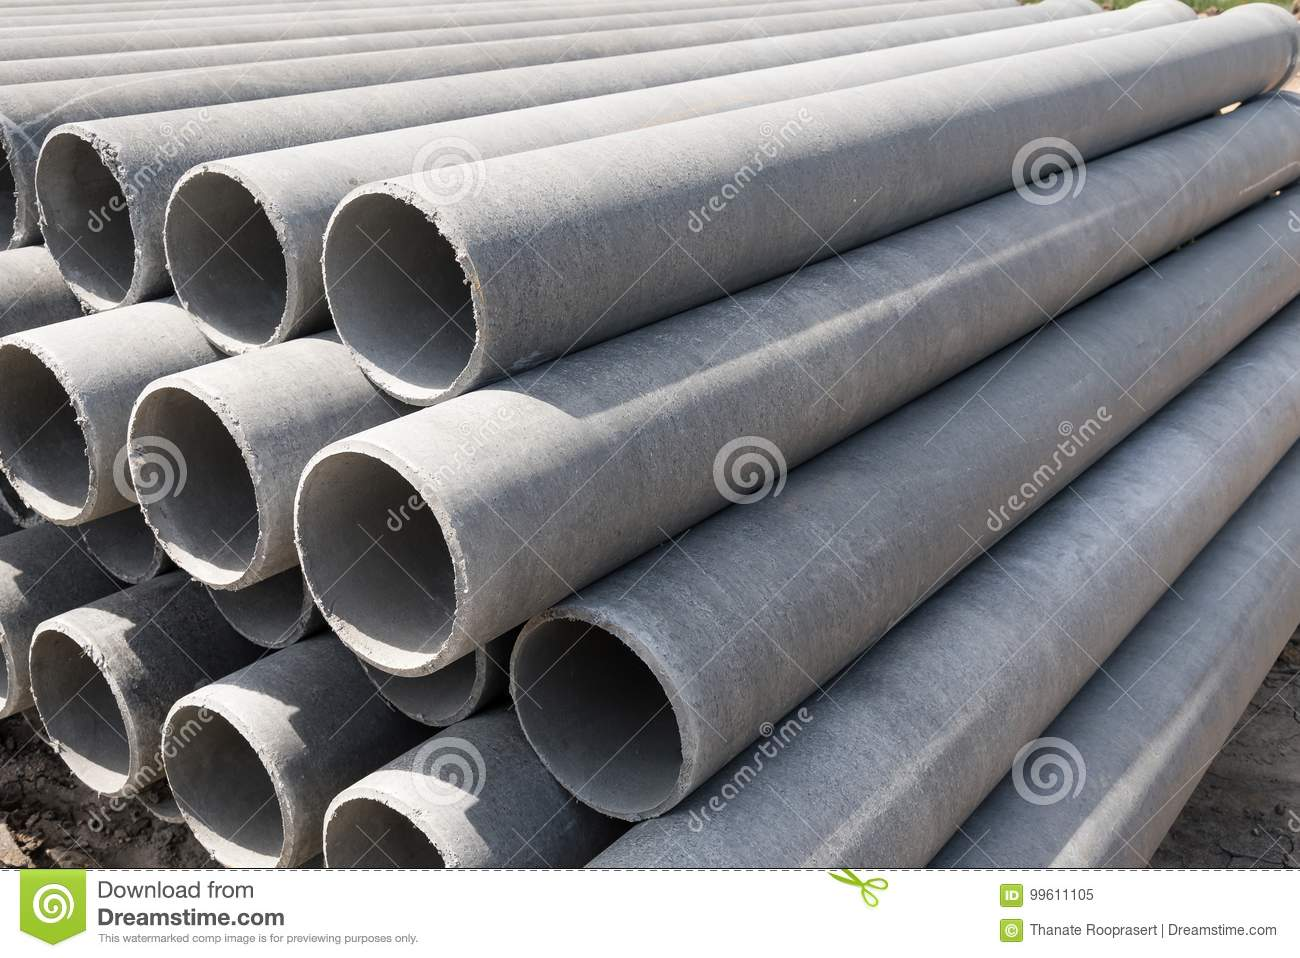 Cement-asbestos pipes: prices and reviews 1